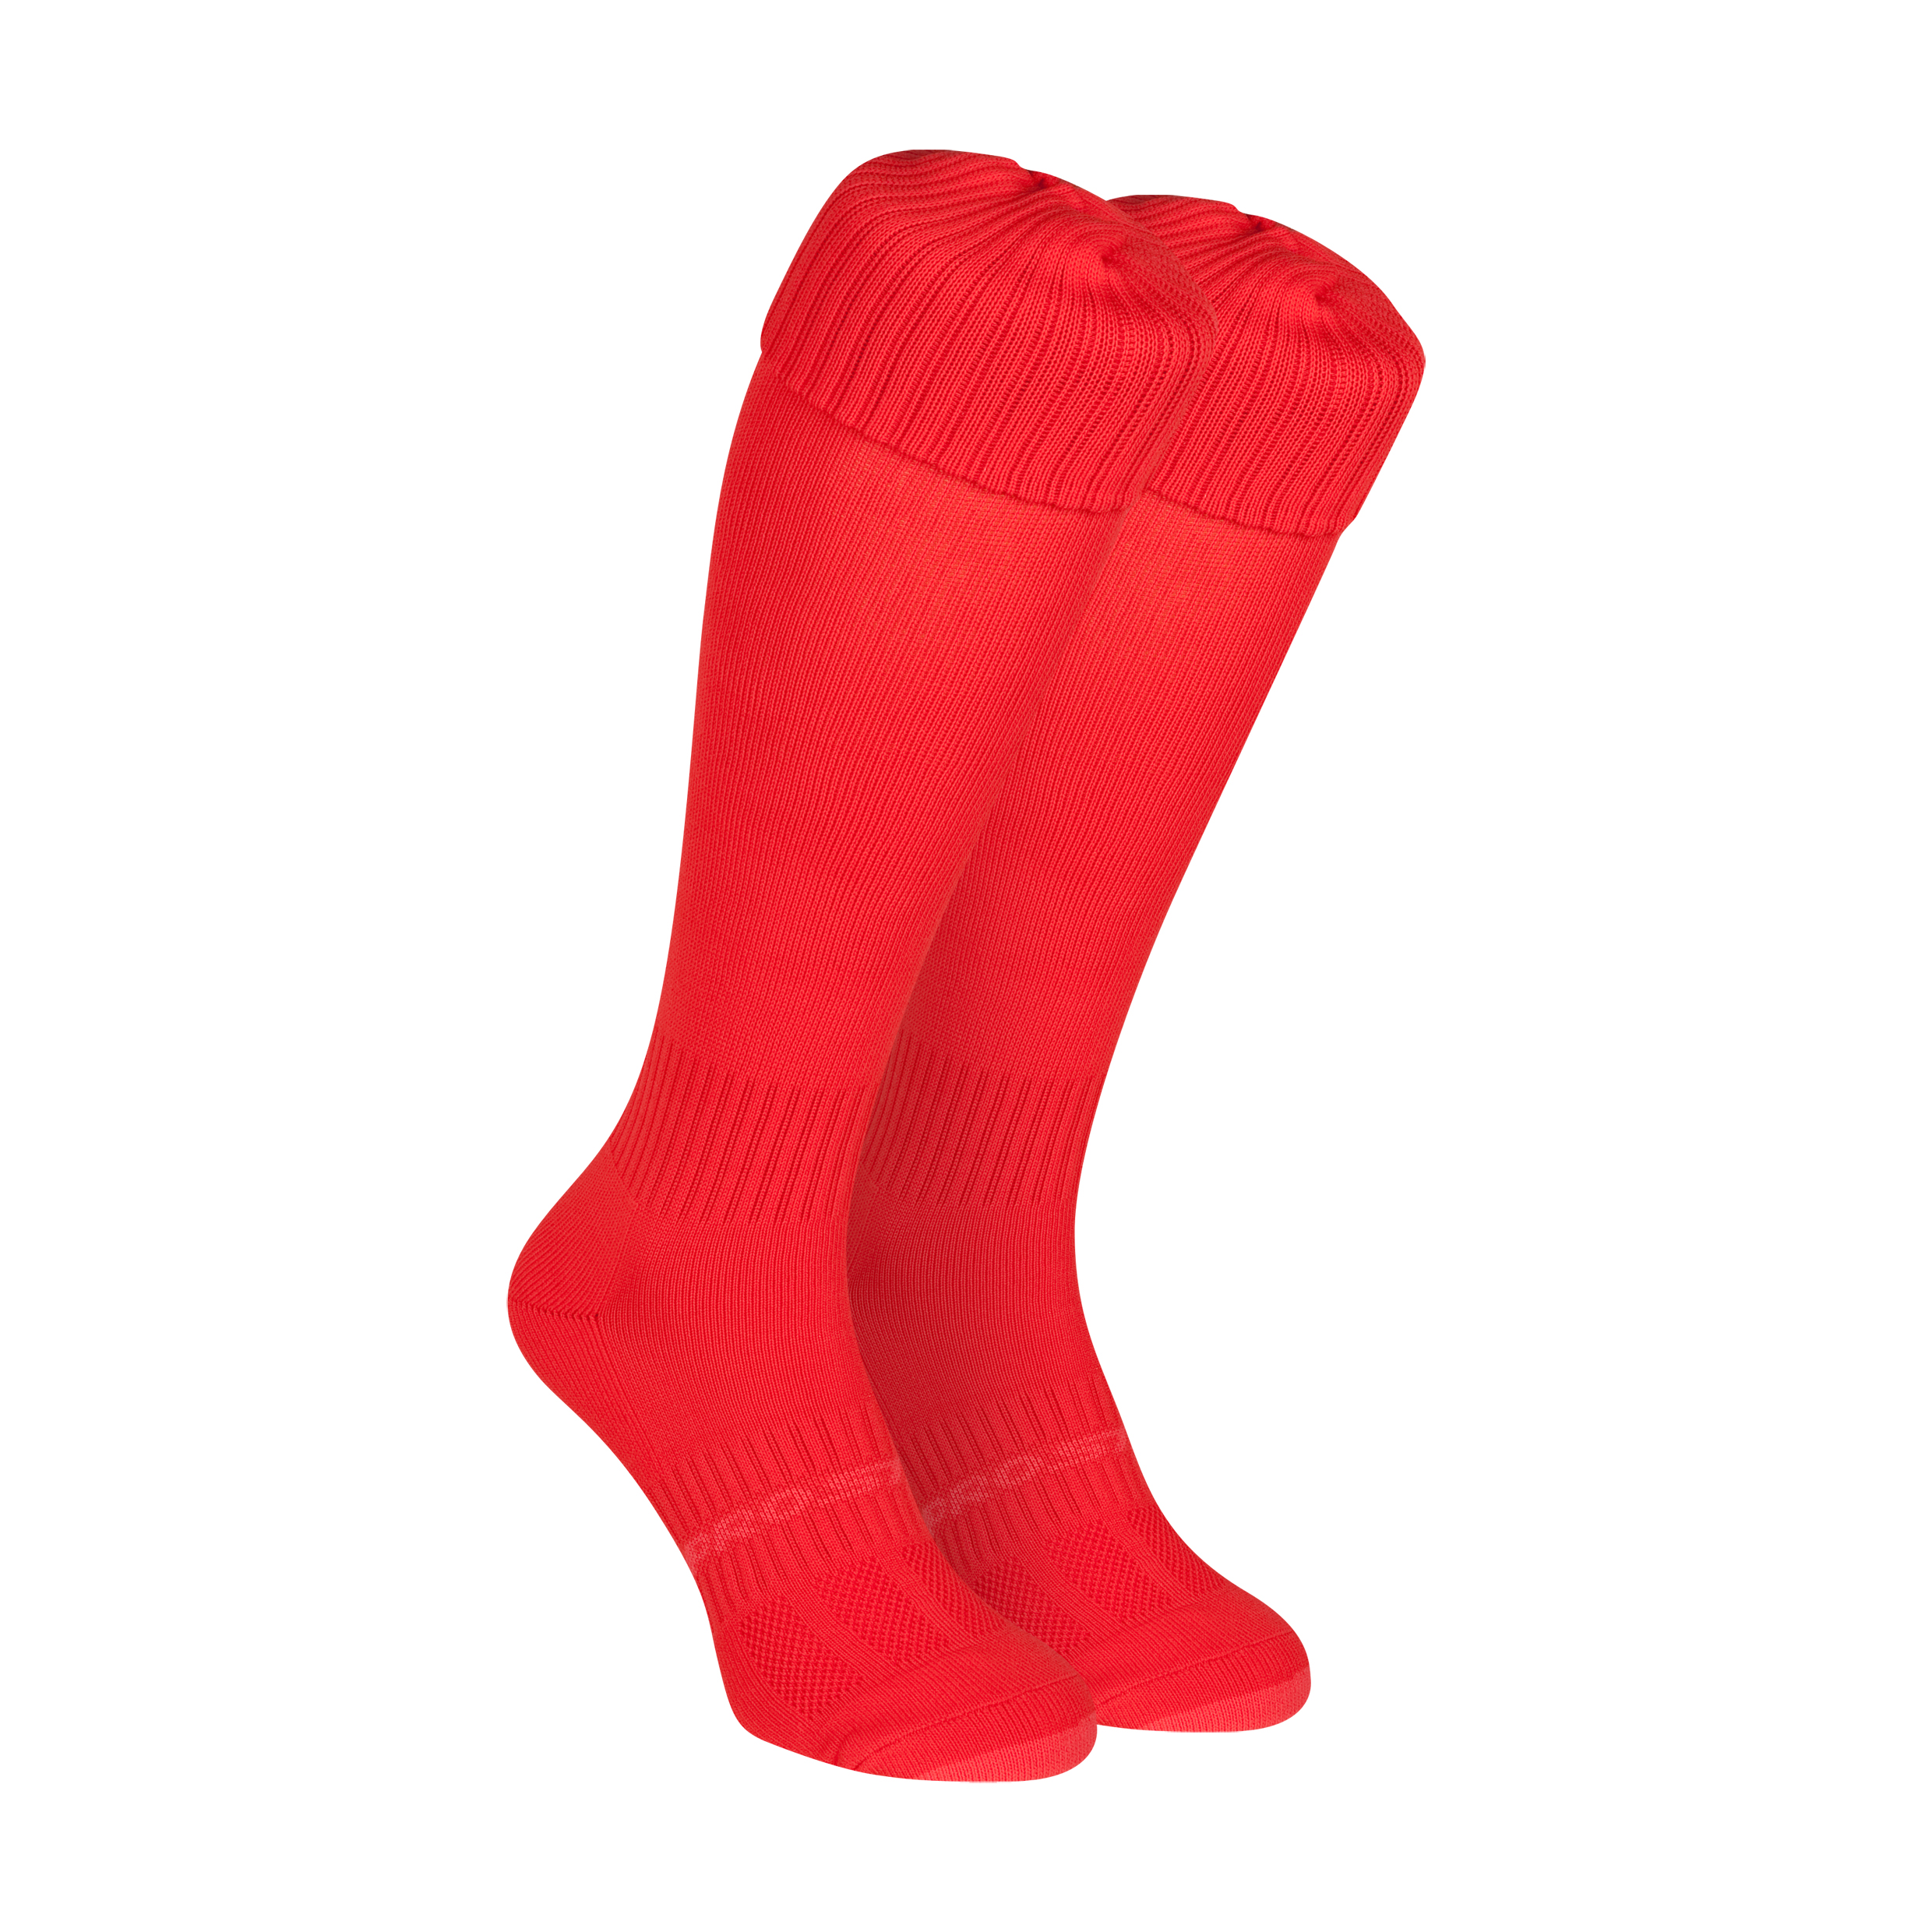 Mitre Mercury Football Socks - Scarlet - Size 7-11